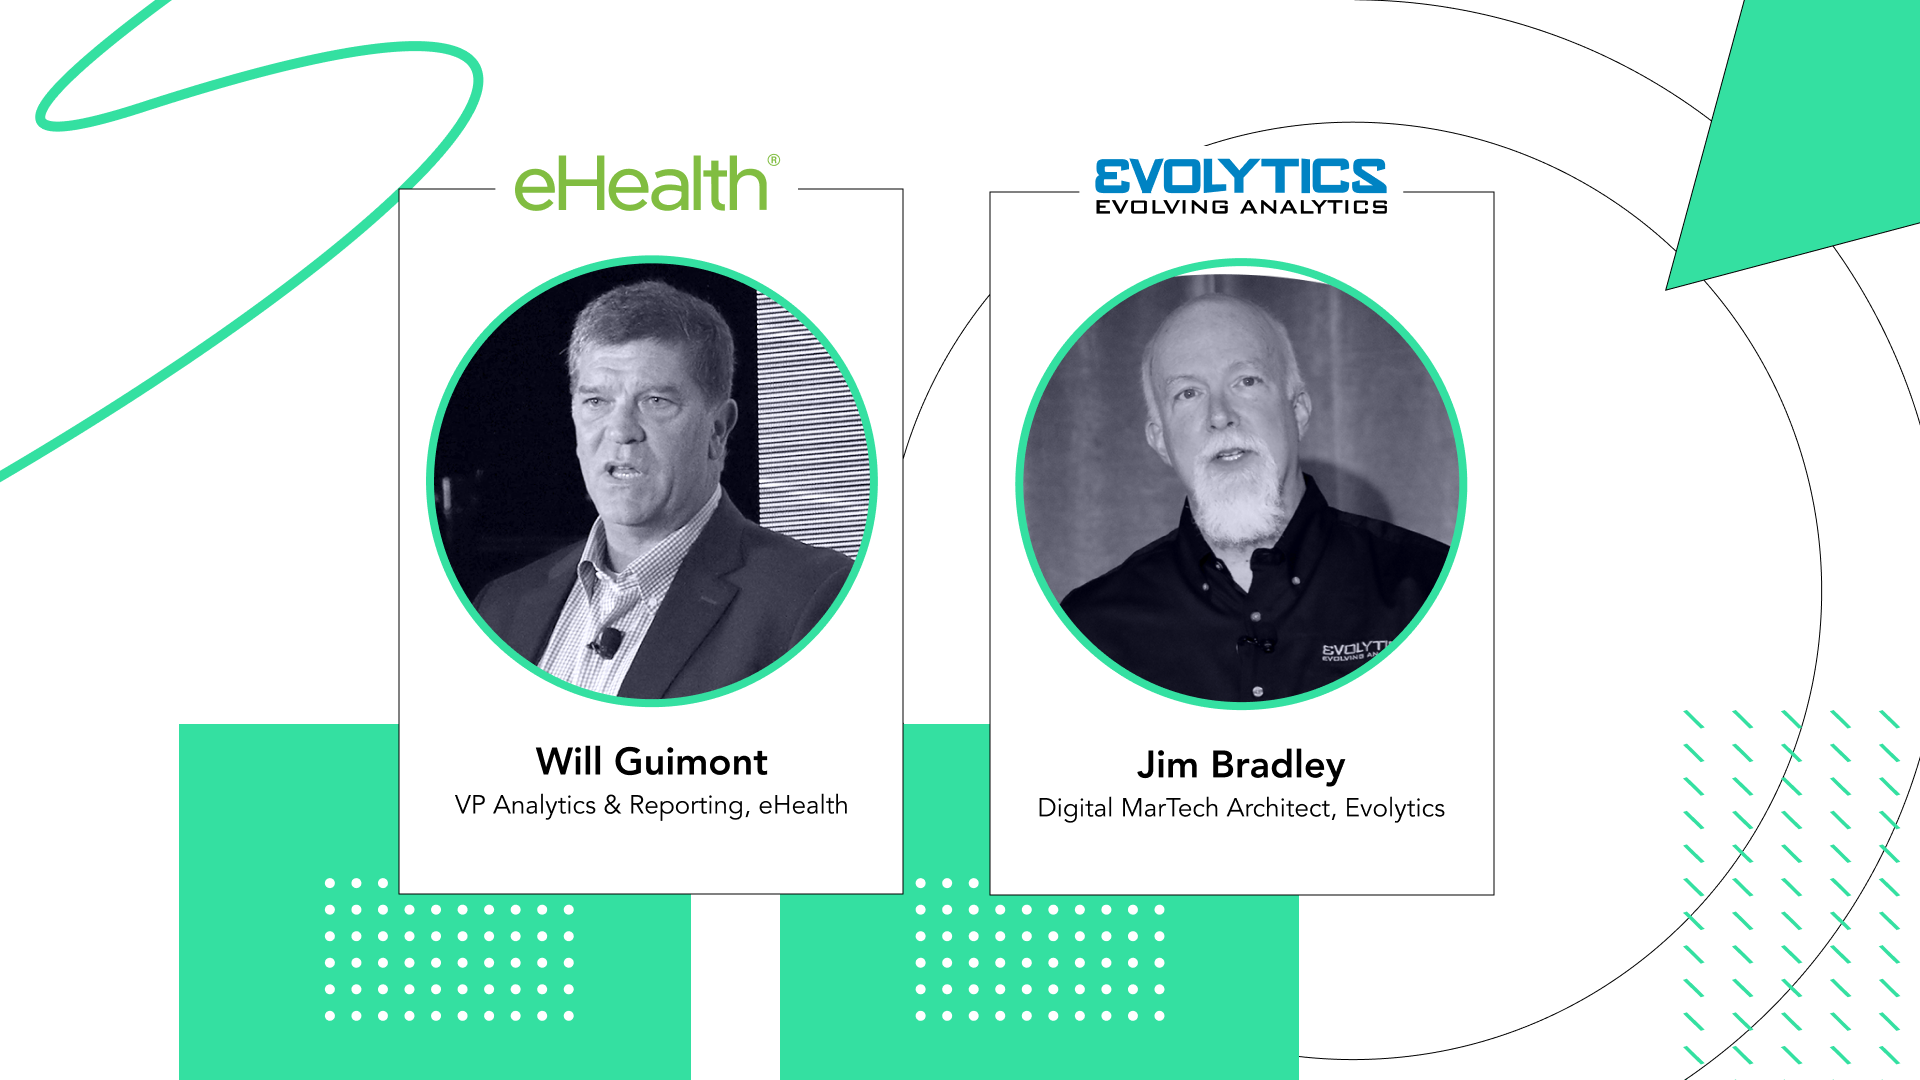 Watch Invoca's Adobe Summit On-Demand Breakout Session with eHealth & Evolytics